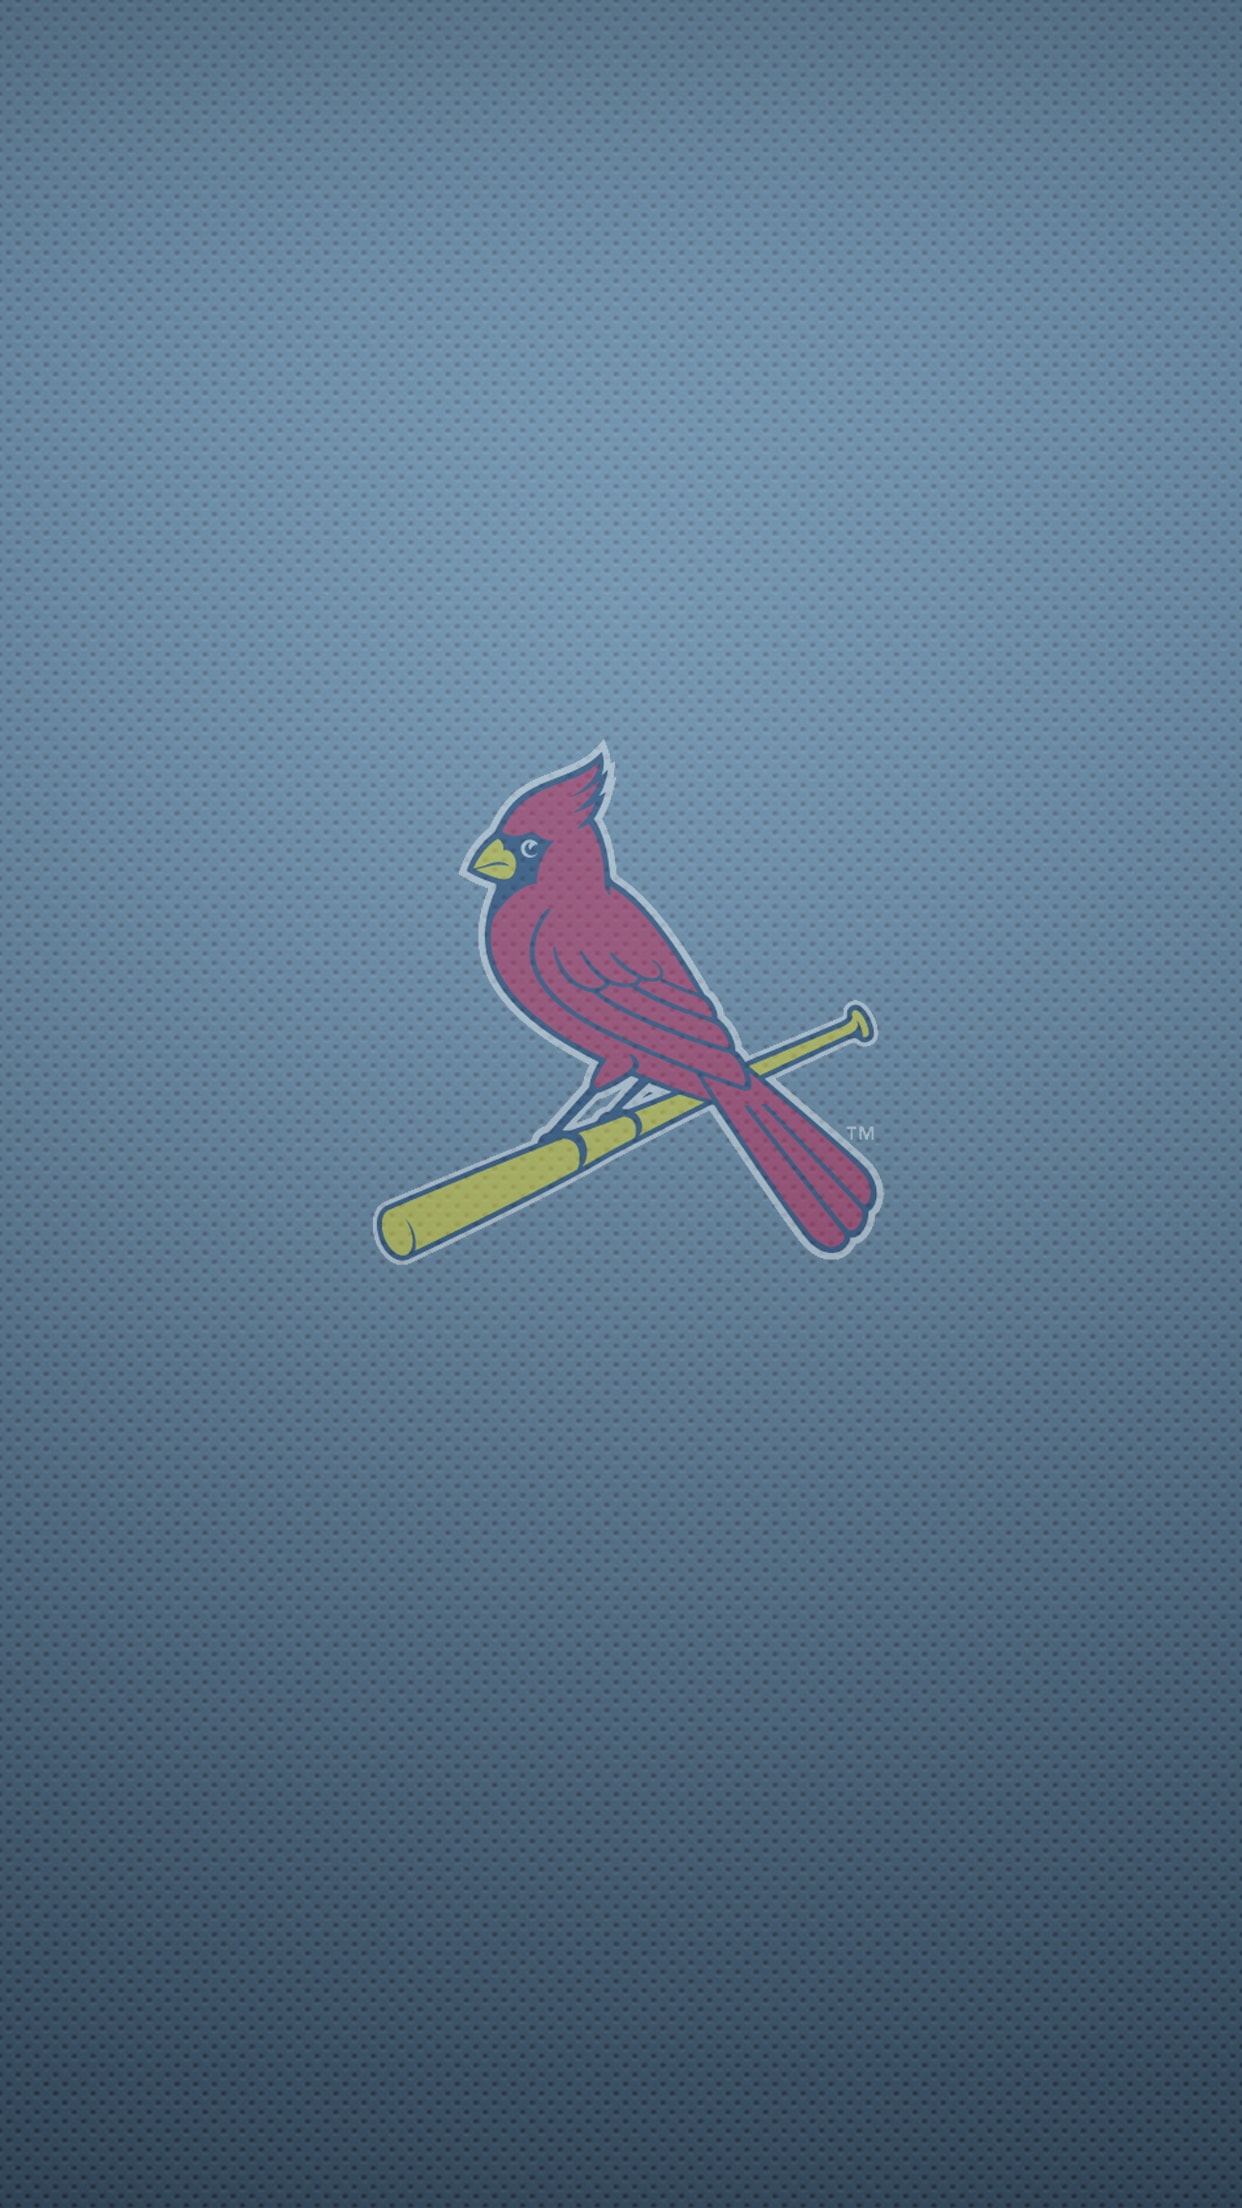 Arizona Cardinals Wallpaper 14